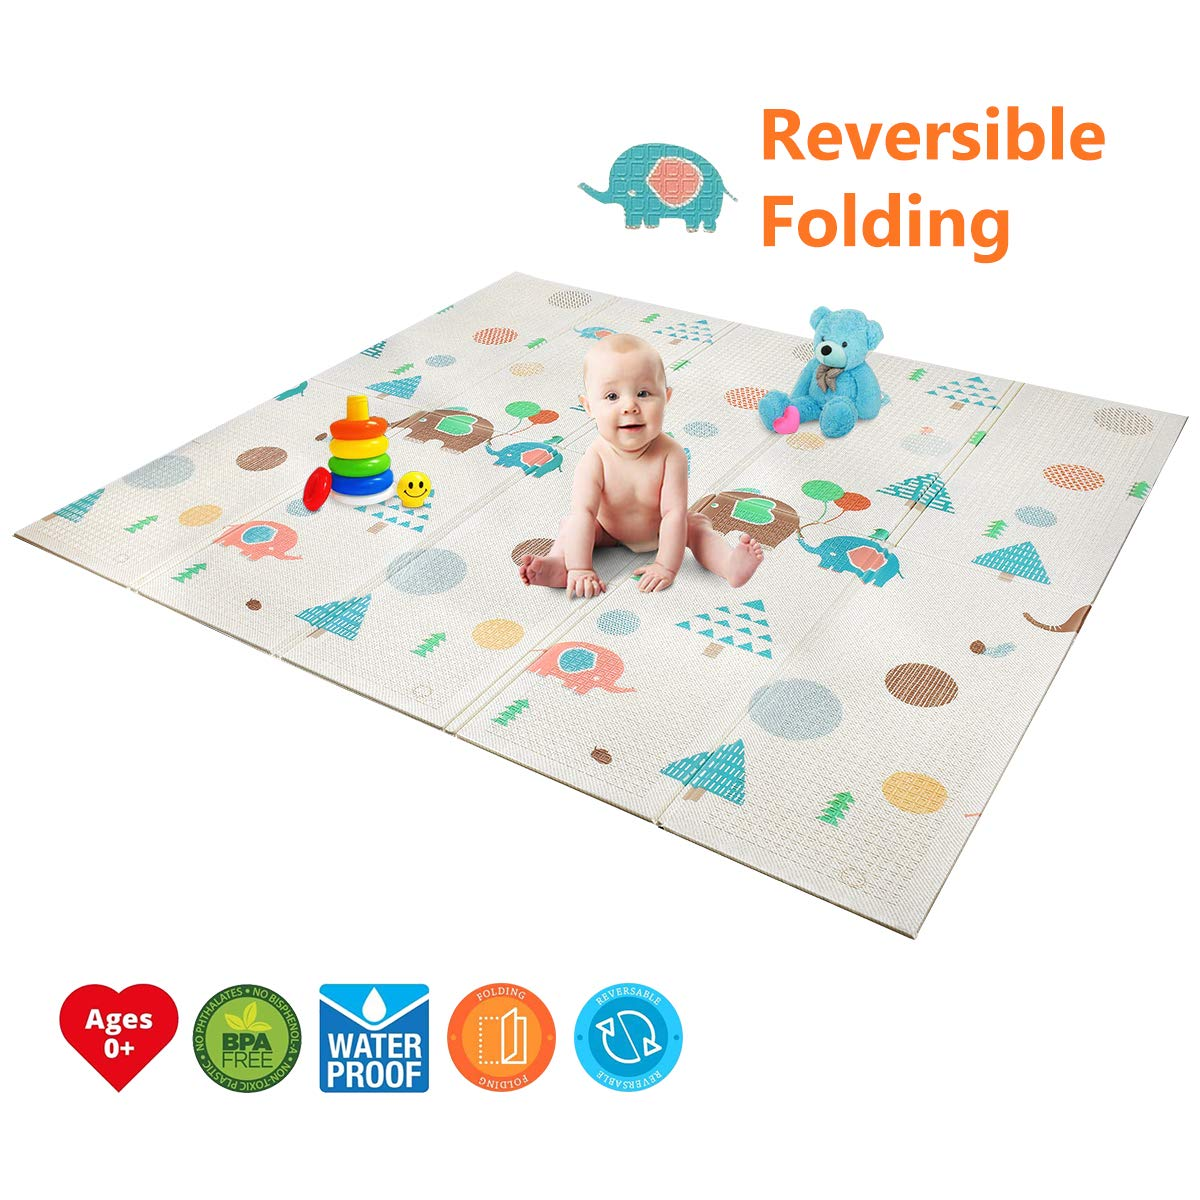 "Folding Kids Play Mat | Portable Baby Play Mat | BPA FREE Non Toxic 78.7"" x 59 0.4 Extra Large Reversible Foam Crawling Mat Toddlers Waterproof Non-Slip Picnic Outdoor Playroom Forstart ML-A02PAN-PM02"